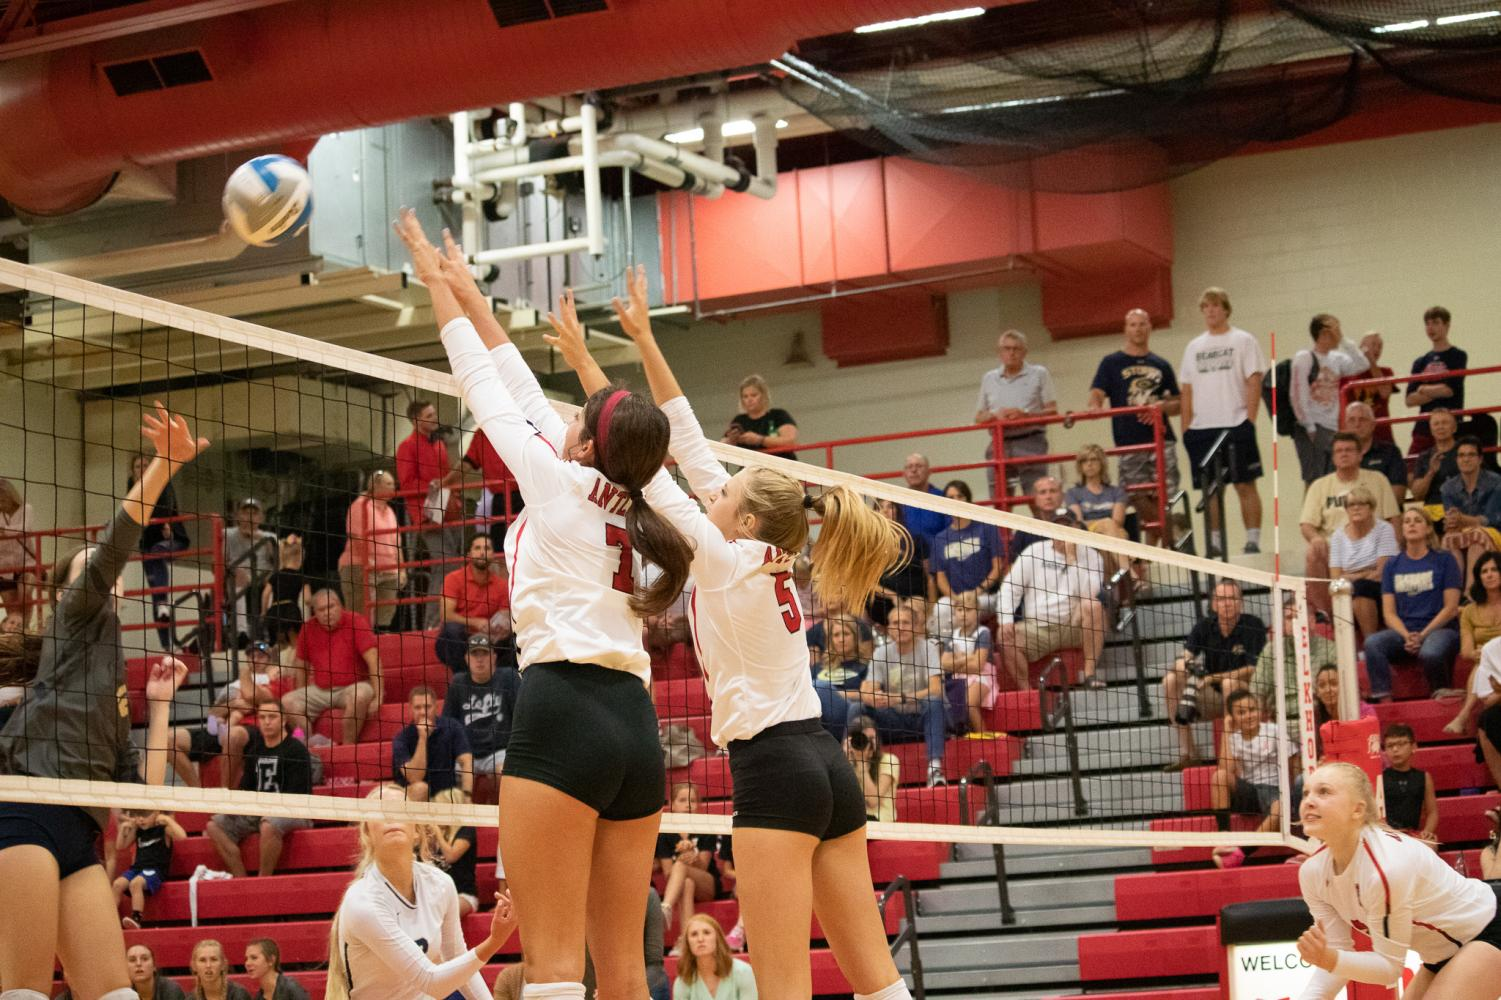 Junior+Abby+Wolfe+a+%287%29+and+Sophomore+Sydney+Raszler+%285%29+blocking+the+last+set+ball.